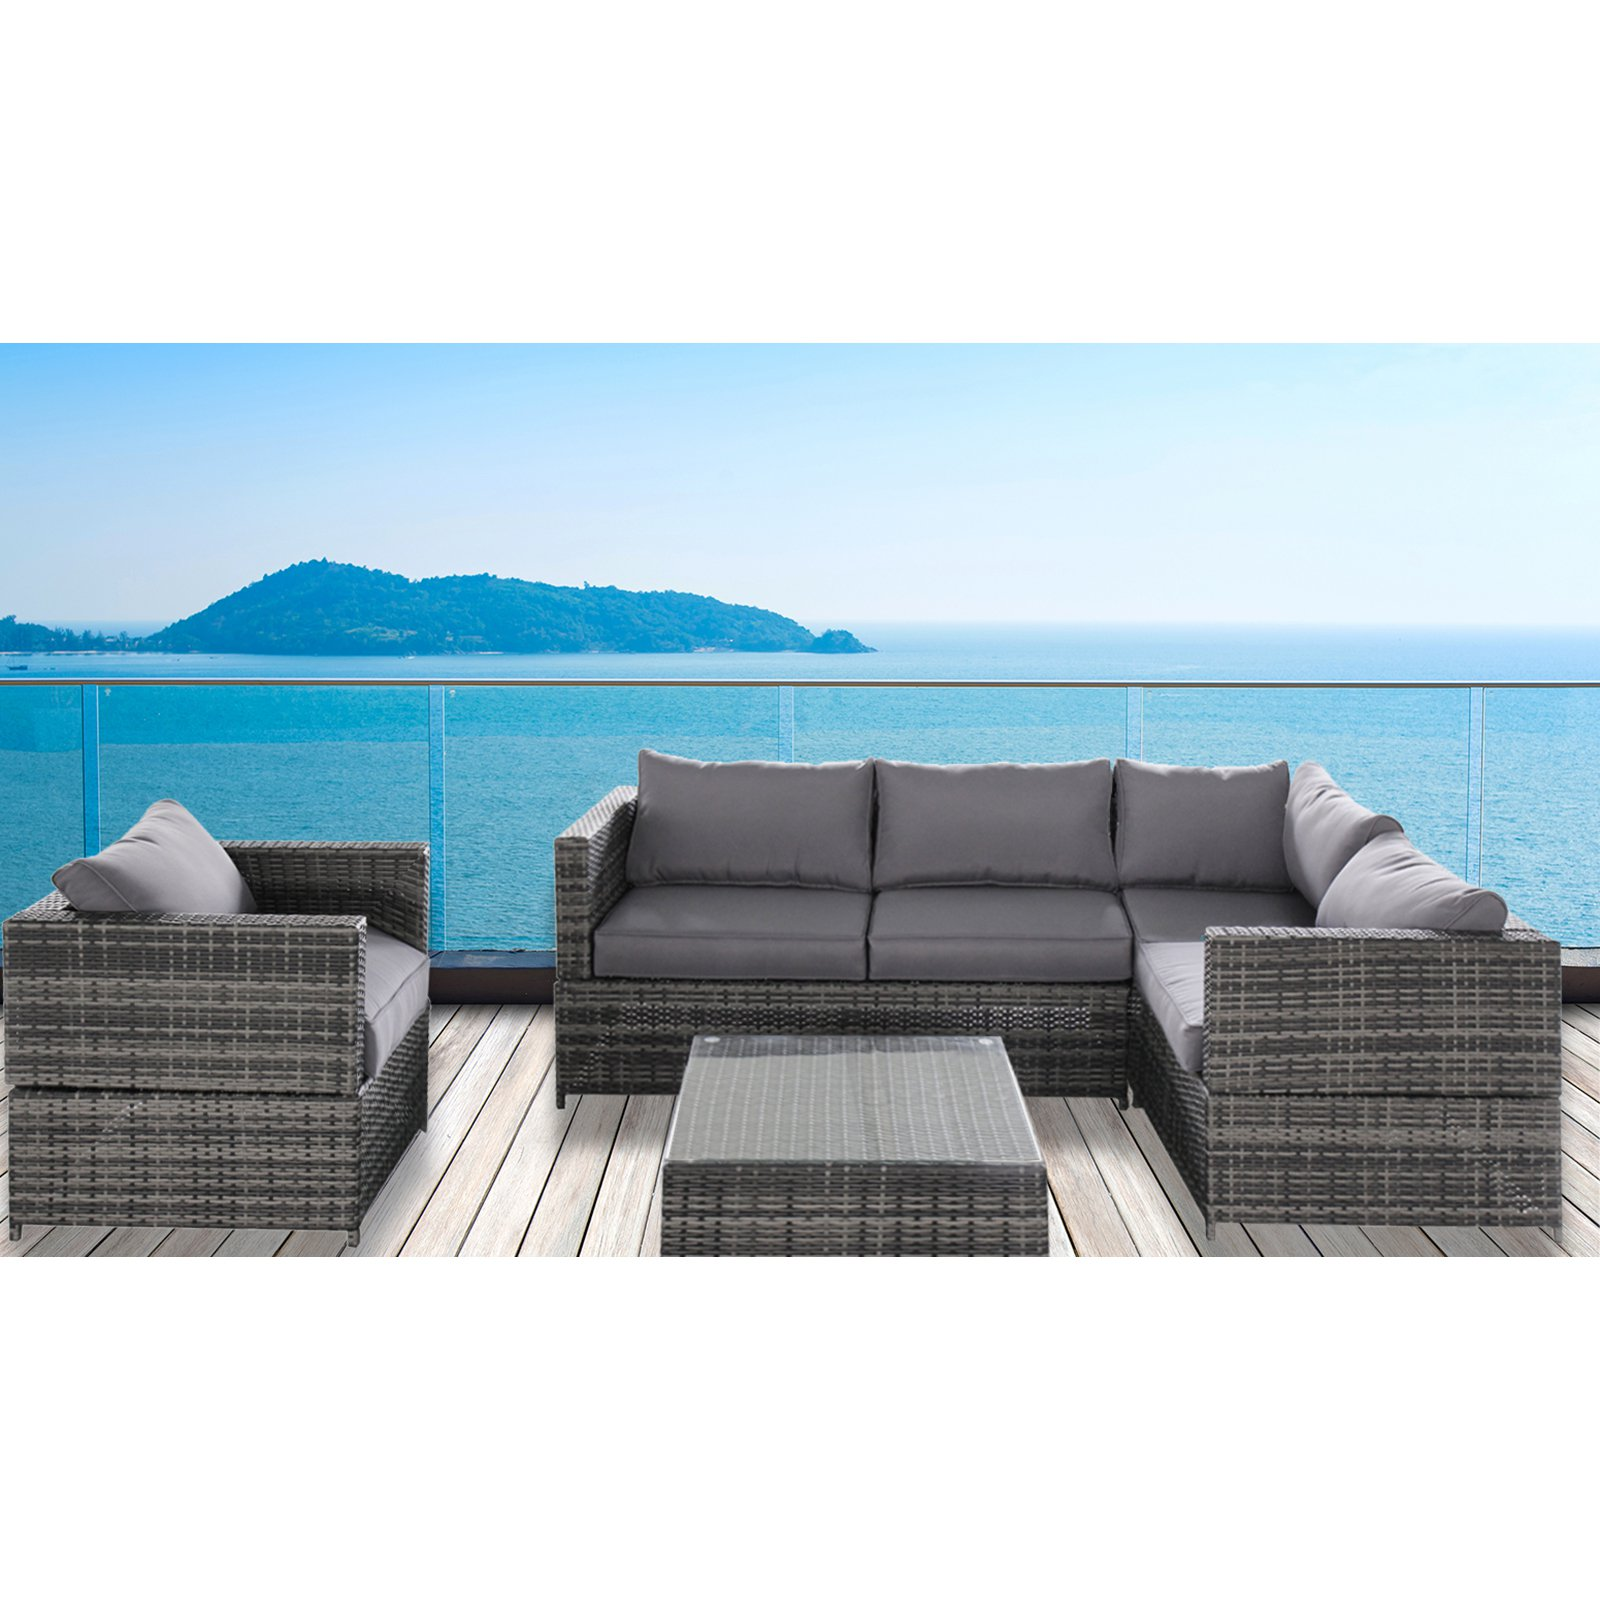 Magari Outdoor Furniture SJ-15125 Complete 4 pieces PE Wicker Rattan Pool Patio Garden Set with Cushions, Grey by Caesar Hardware